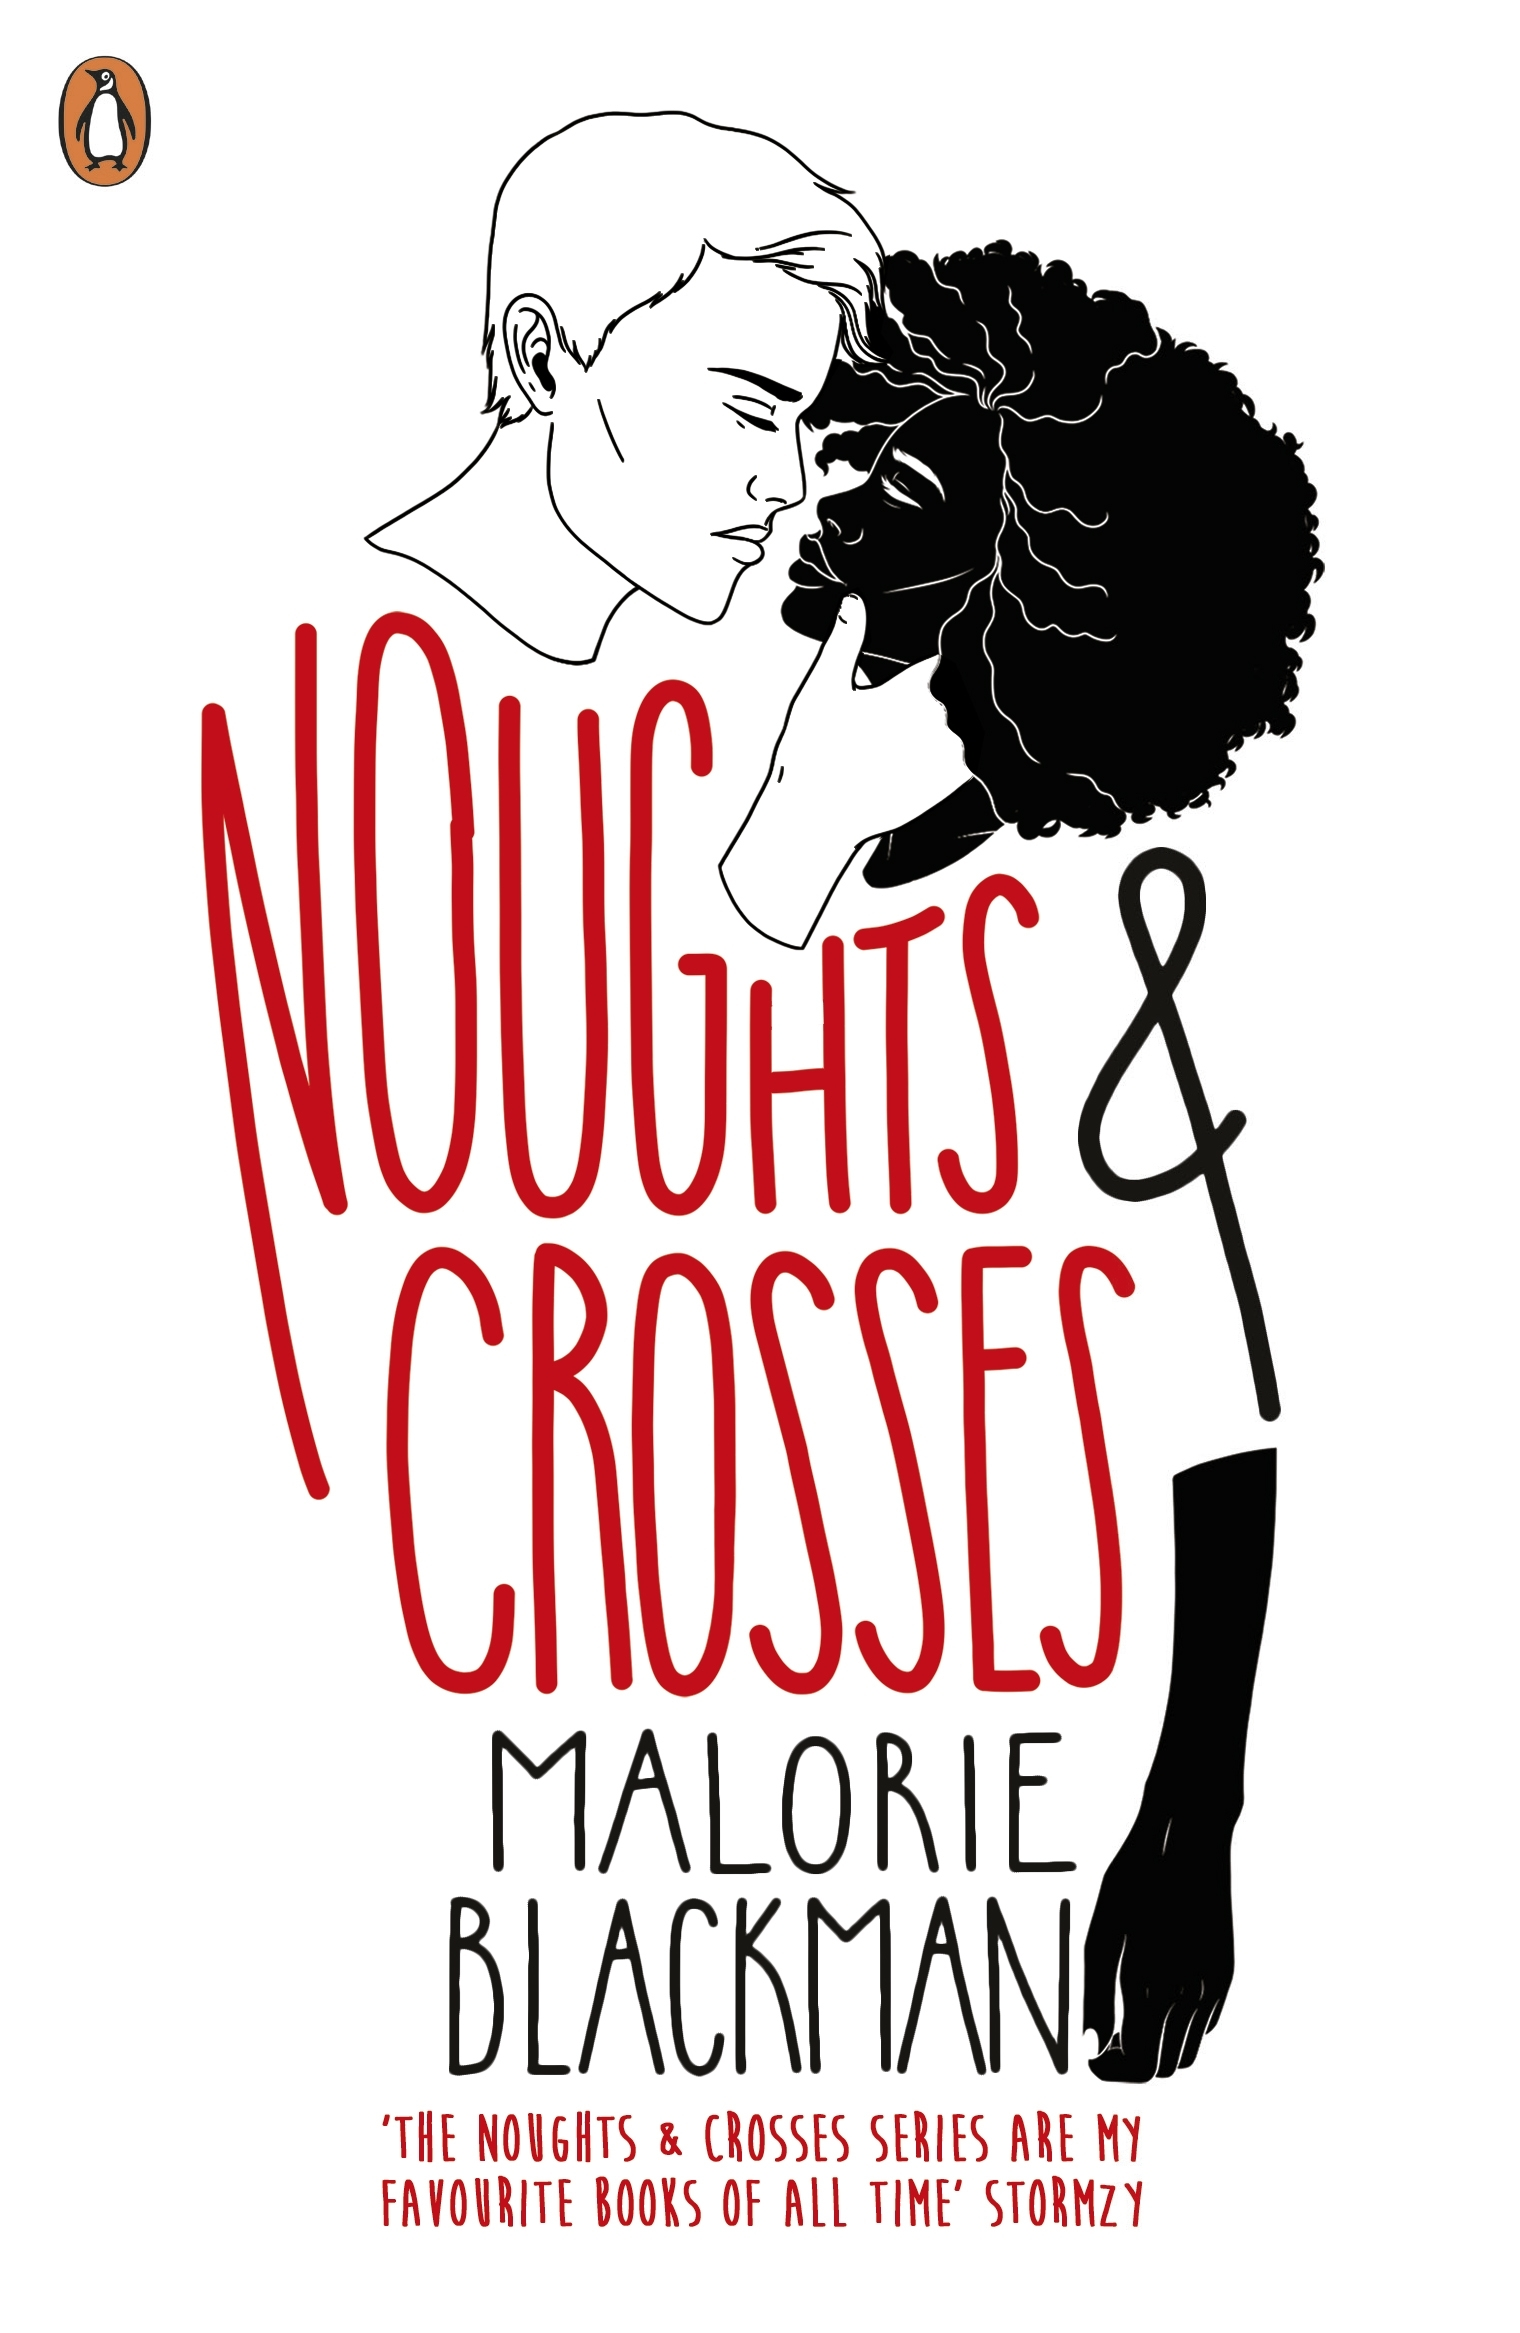 noughts crosses malorie blackman essay Check out our top free essays on noughts and crosses to help you write your own essay noughts and crosses essay malorie blackman.